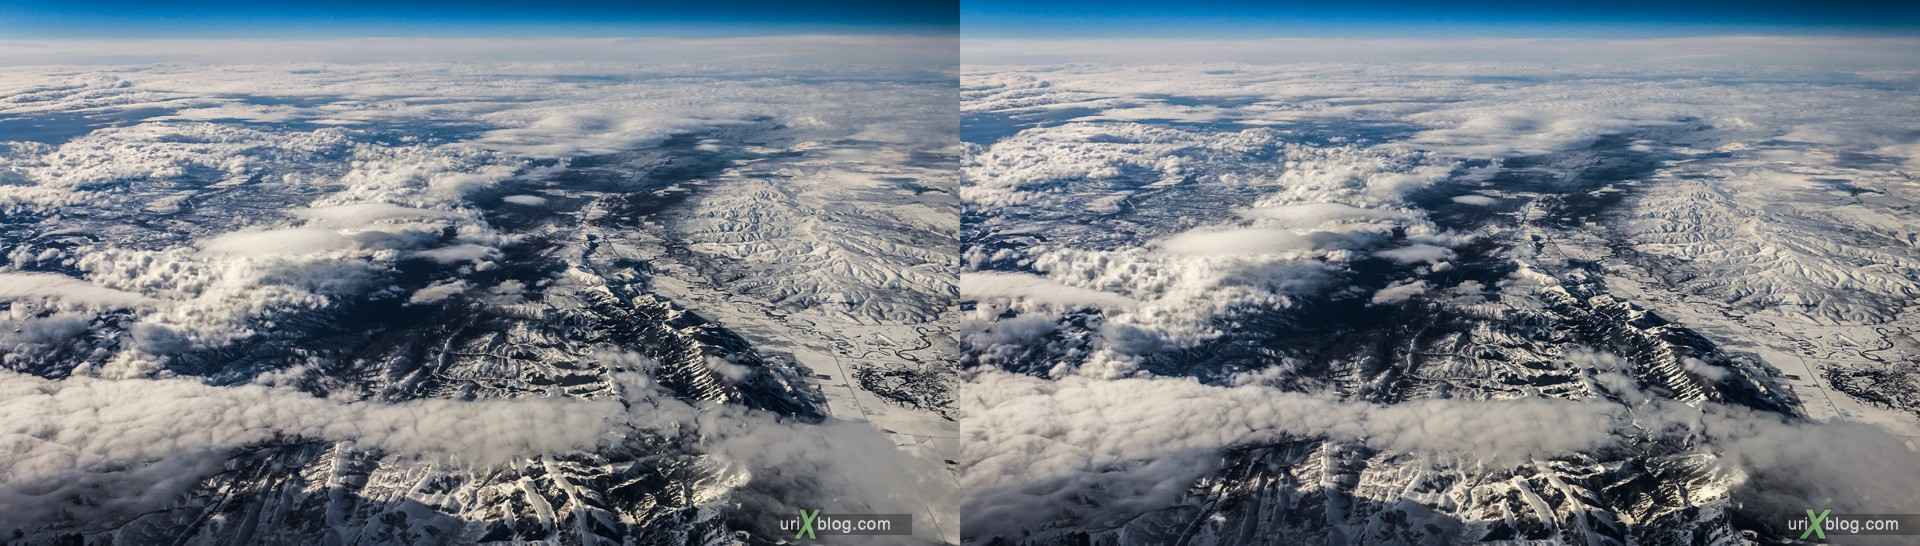 2013, Wyoming, Rocky mountains, USA, panorama, airplane, black and white, bw, snow, ice, clouds, horizon, 3D, stereo pair, cross-eyed, crossview, cross view stereo pair, stereoscopic